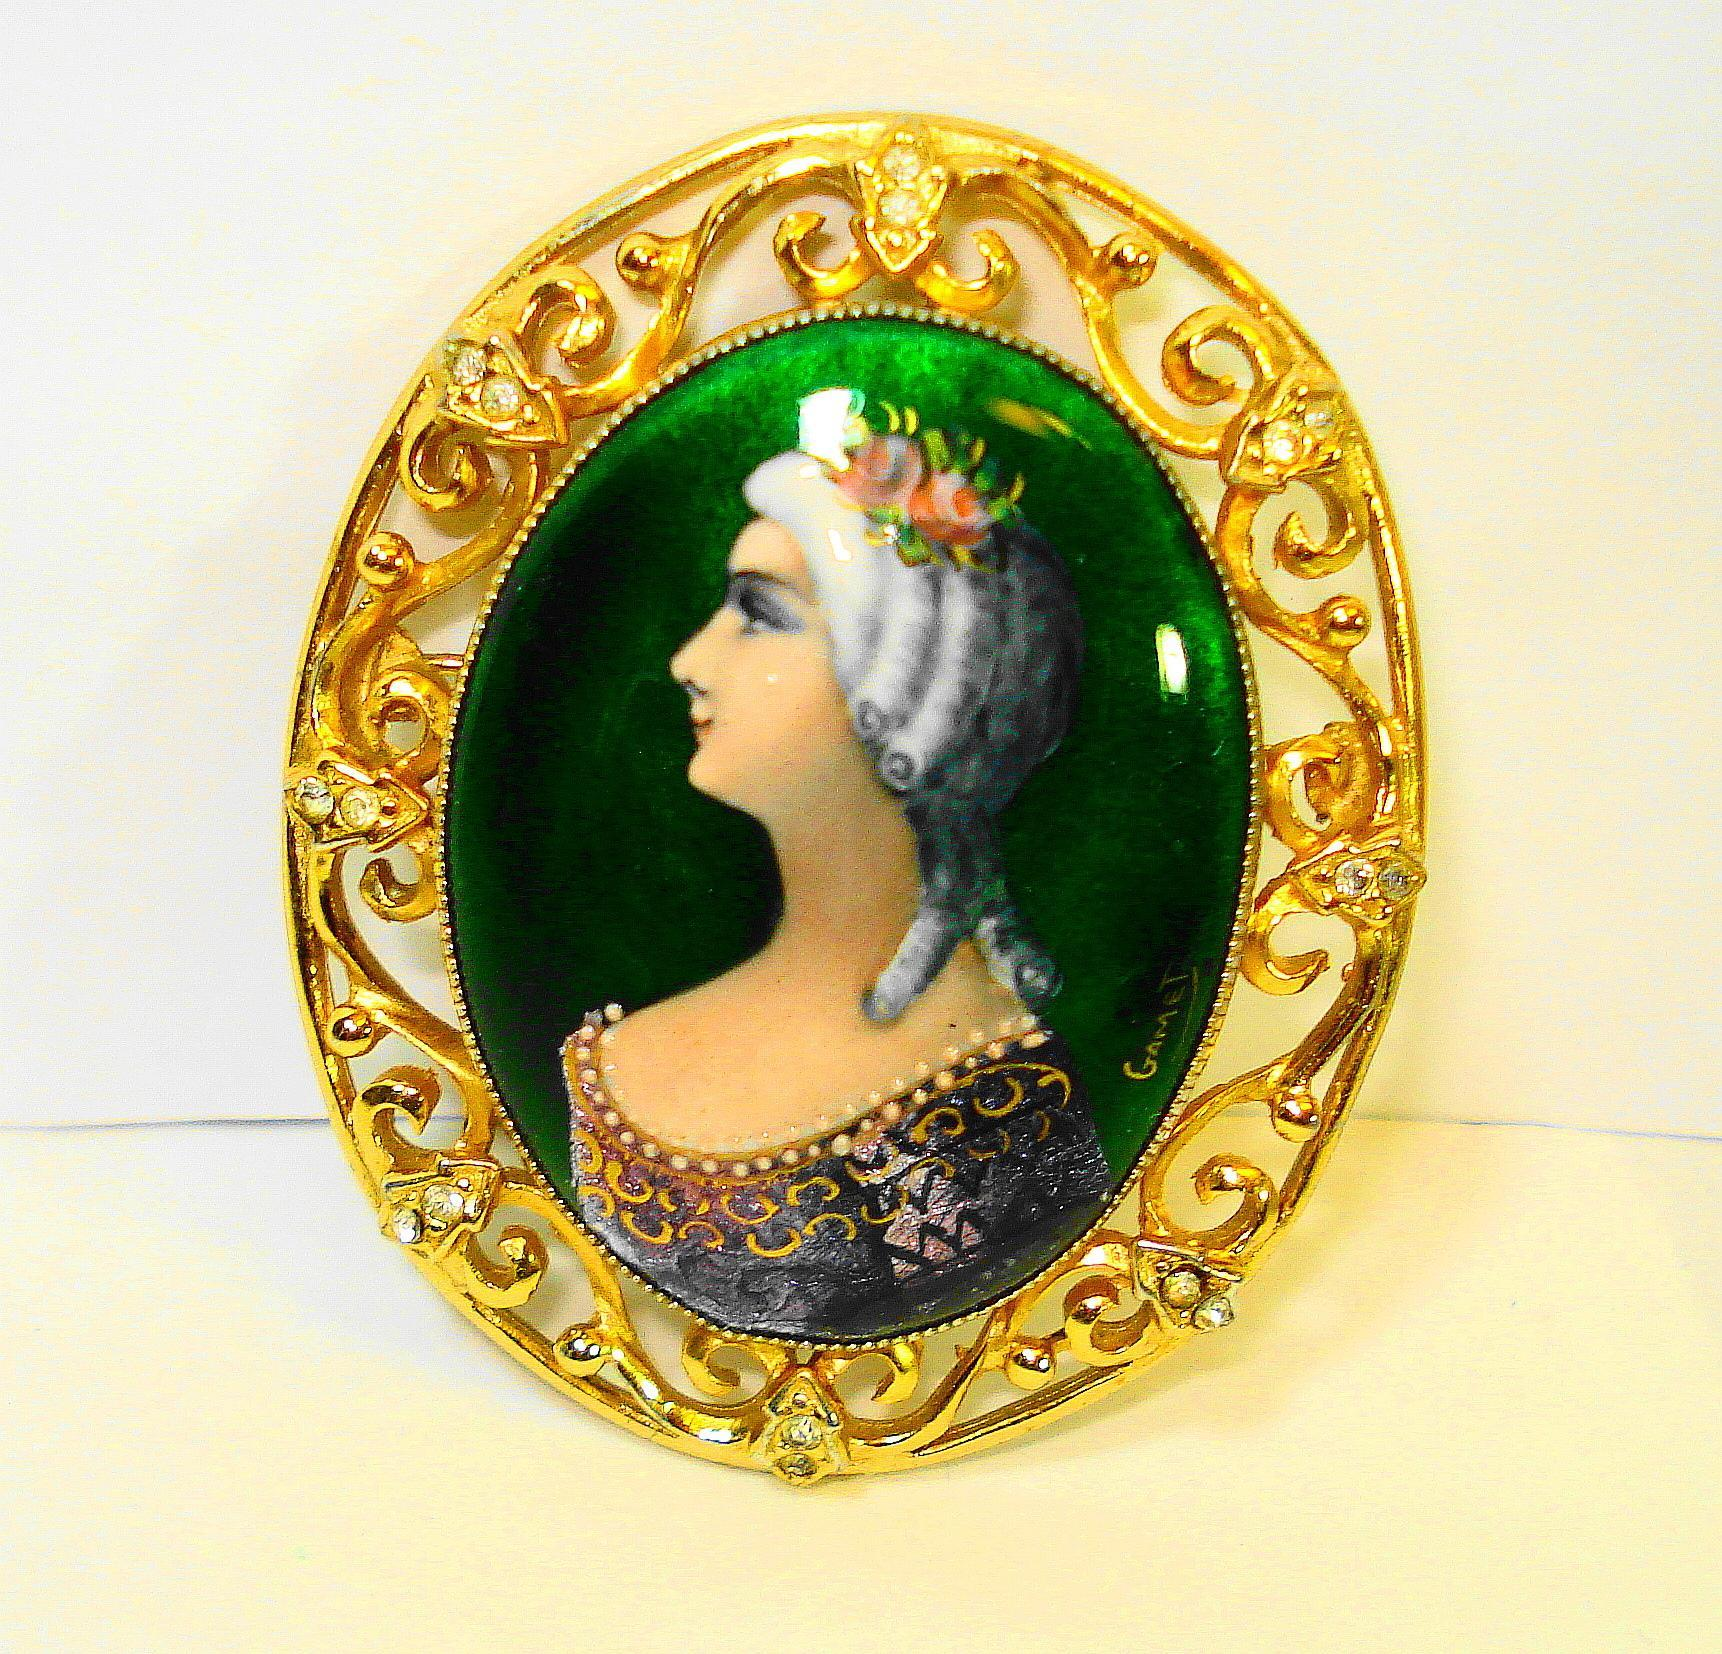 LG Foiled Limoges Enamel Lady Portrait Brooch / Pendant